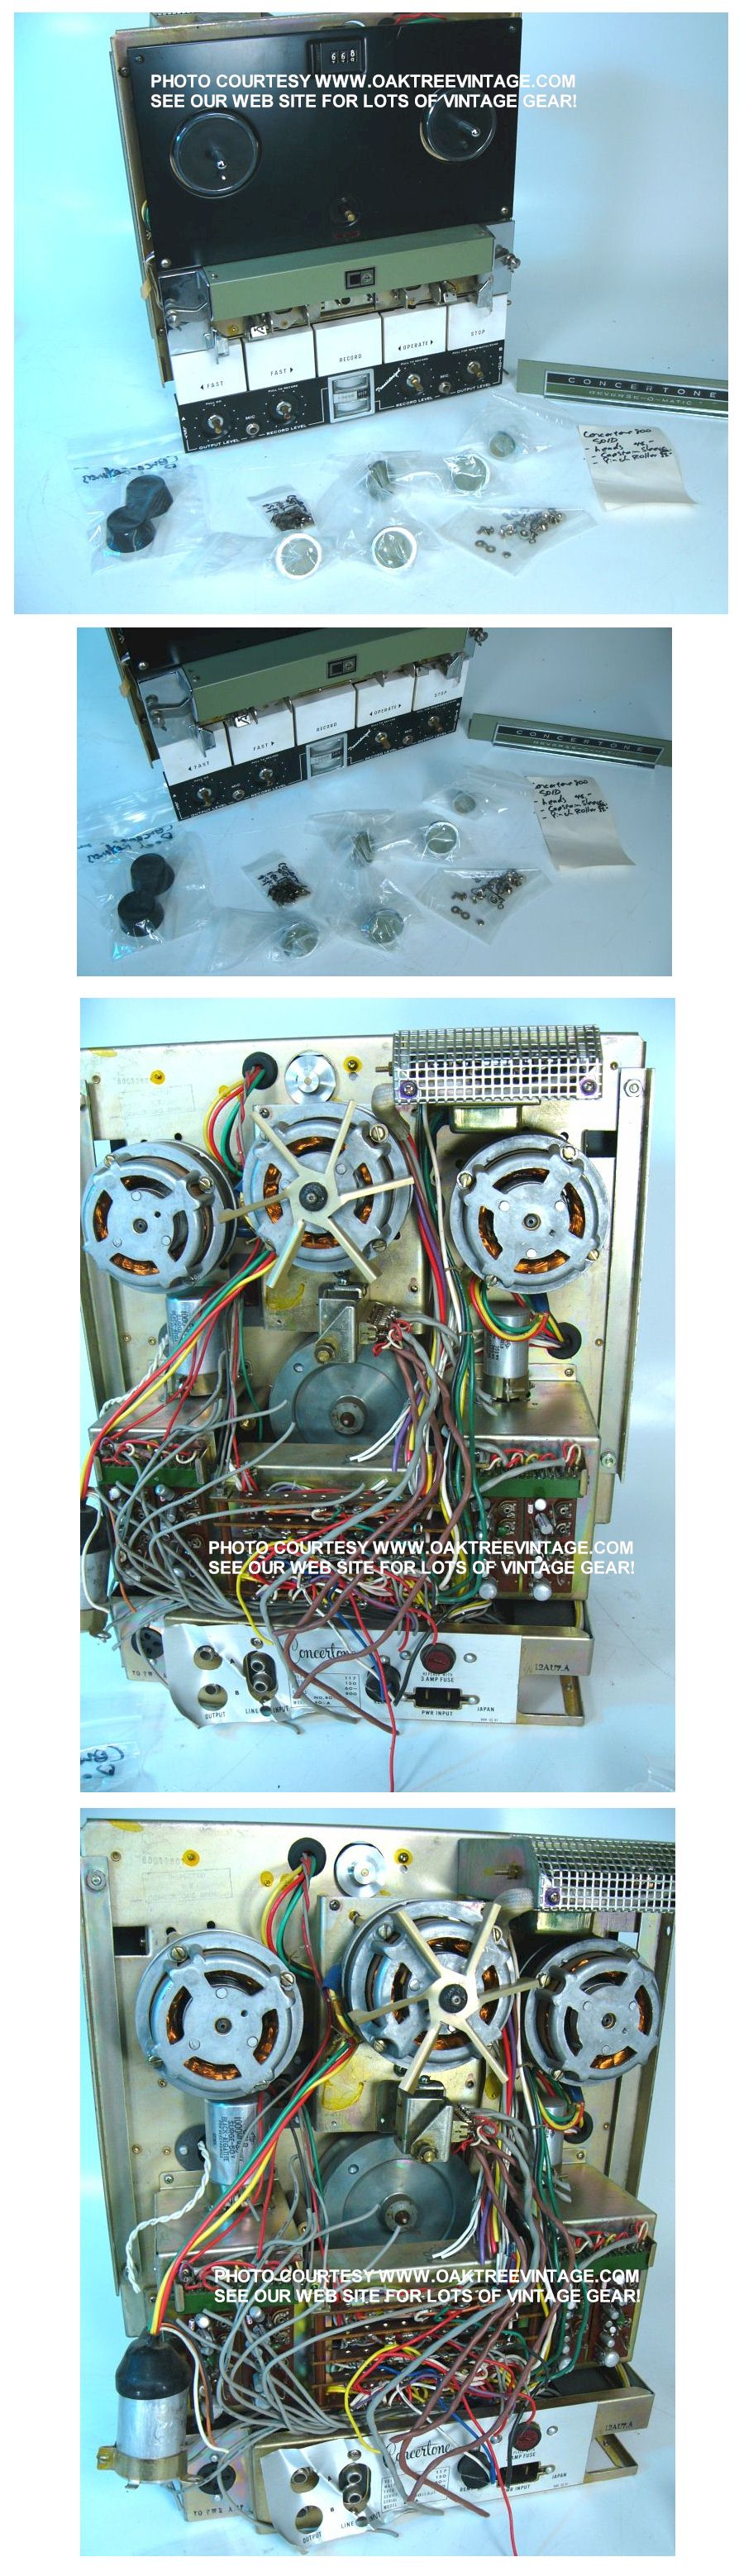 Stereo Home Audio Parts Spares Replacement Electronic Speaker Assembly Diagram And List For Lxi Audioequipmentparts Click On Above Thumbnails To Enlarge Photos Concertone Reverse O Matic Reel Tape Recorder Deck 802a Sale Parting Out